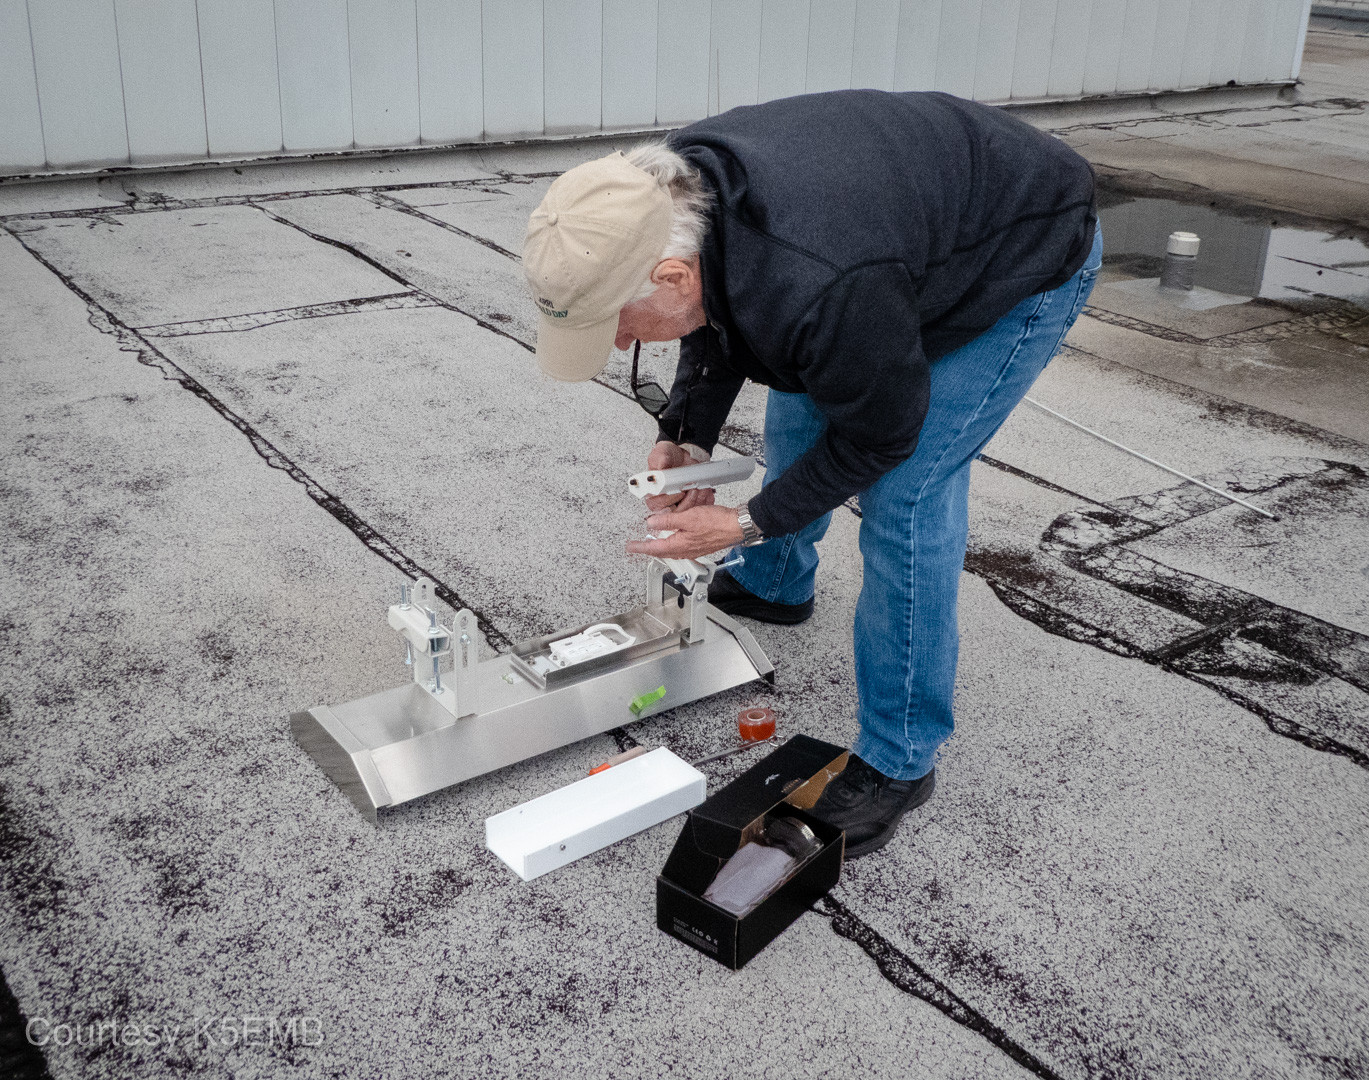 Mike, W5MDB, attaches the last rocket to the sector antenna.